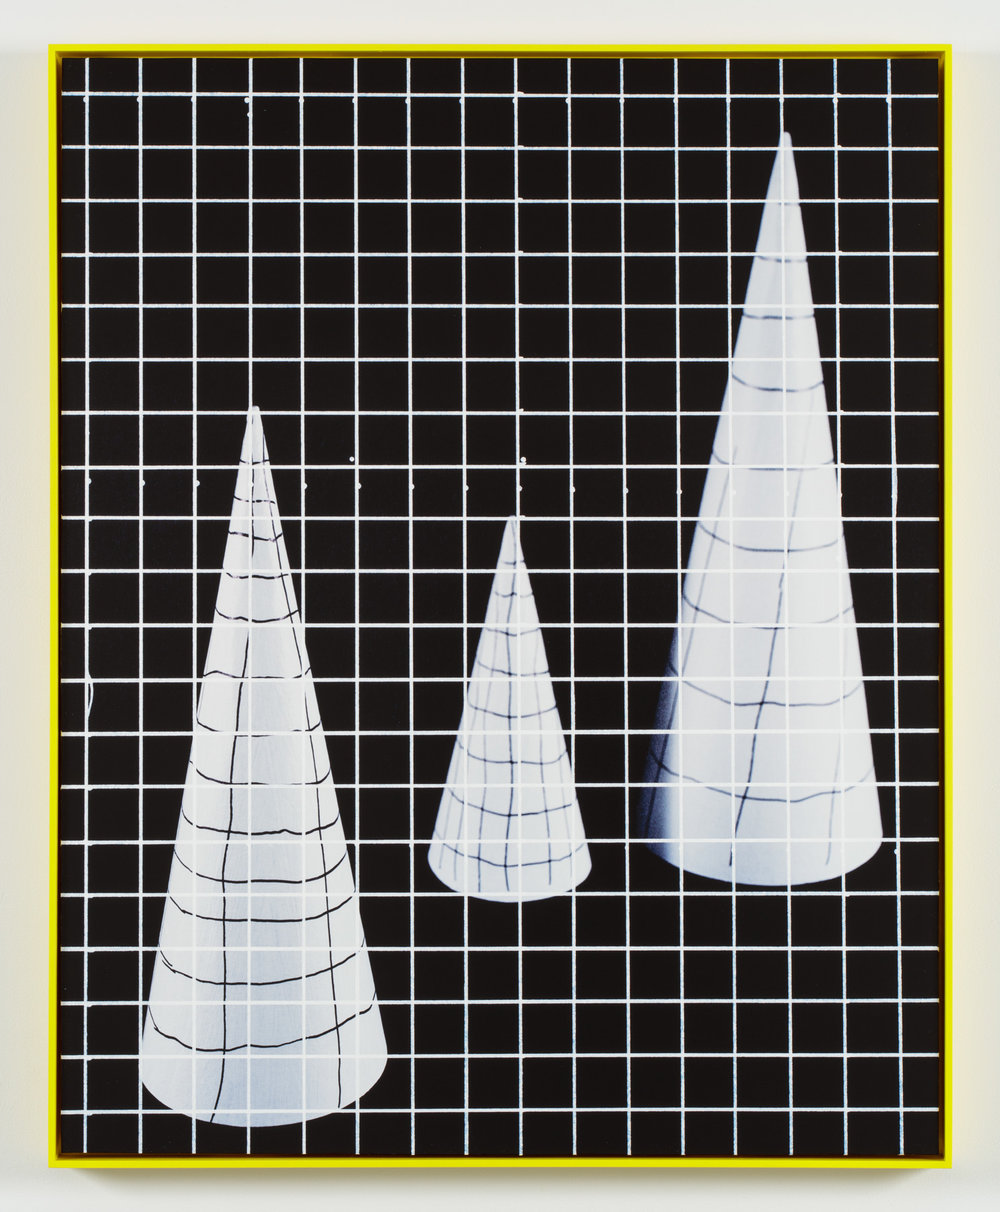 Space-time Cones   Archival Inkjet Print  32 x 40 inches  edition of 3 + AP  2016